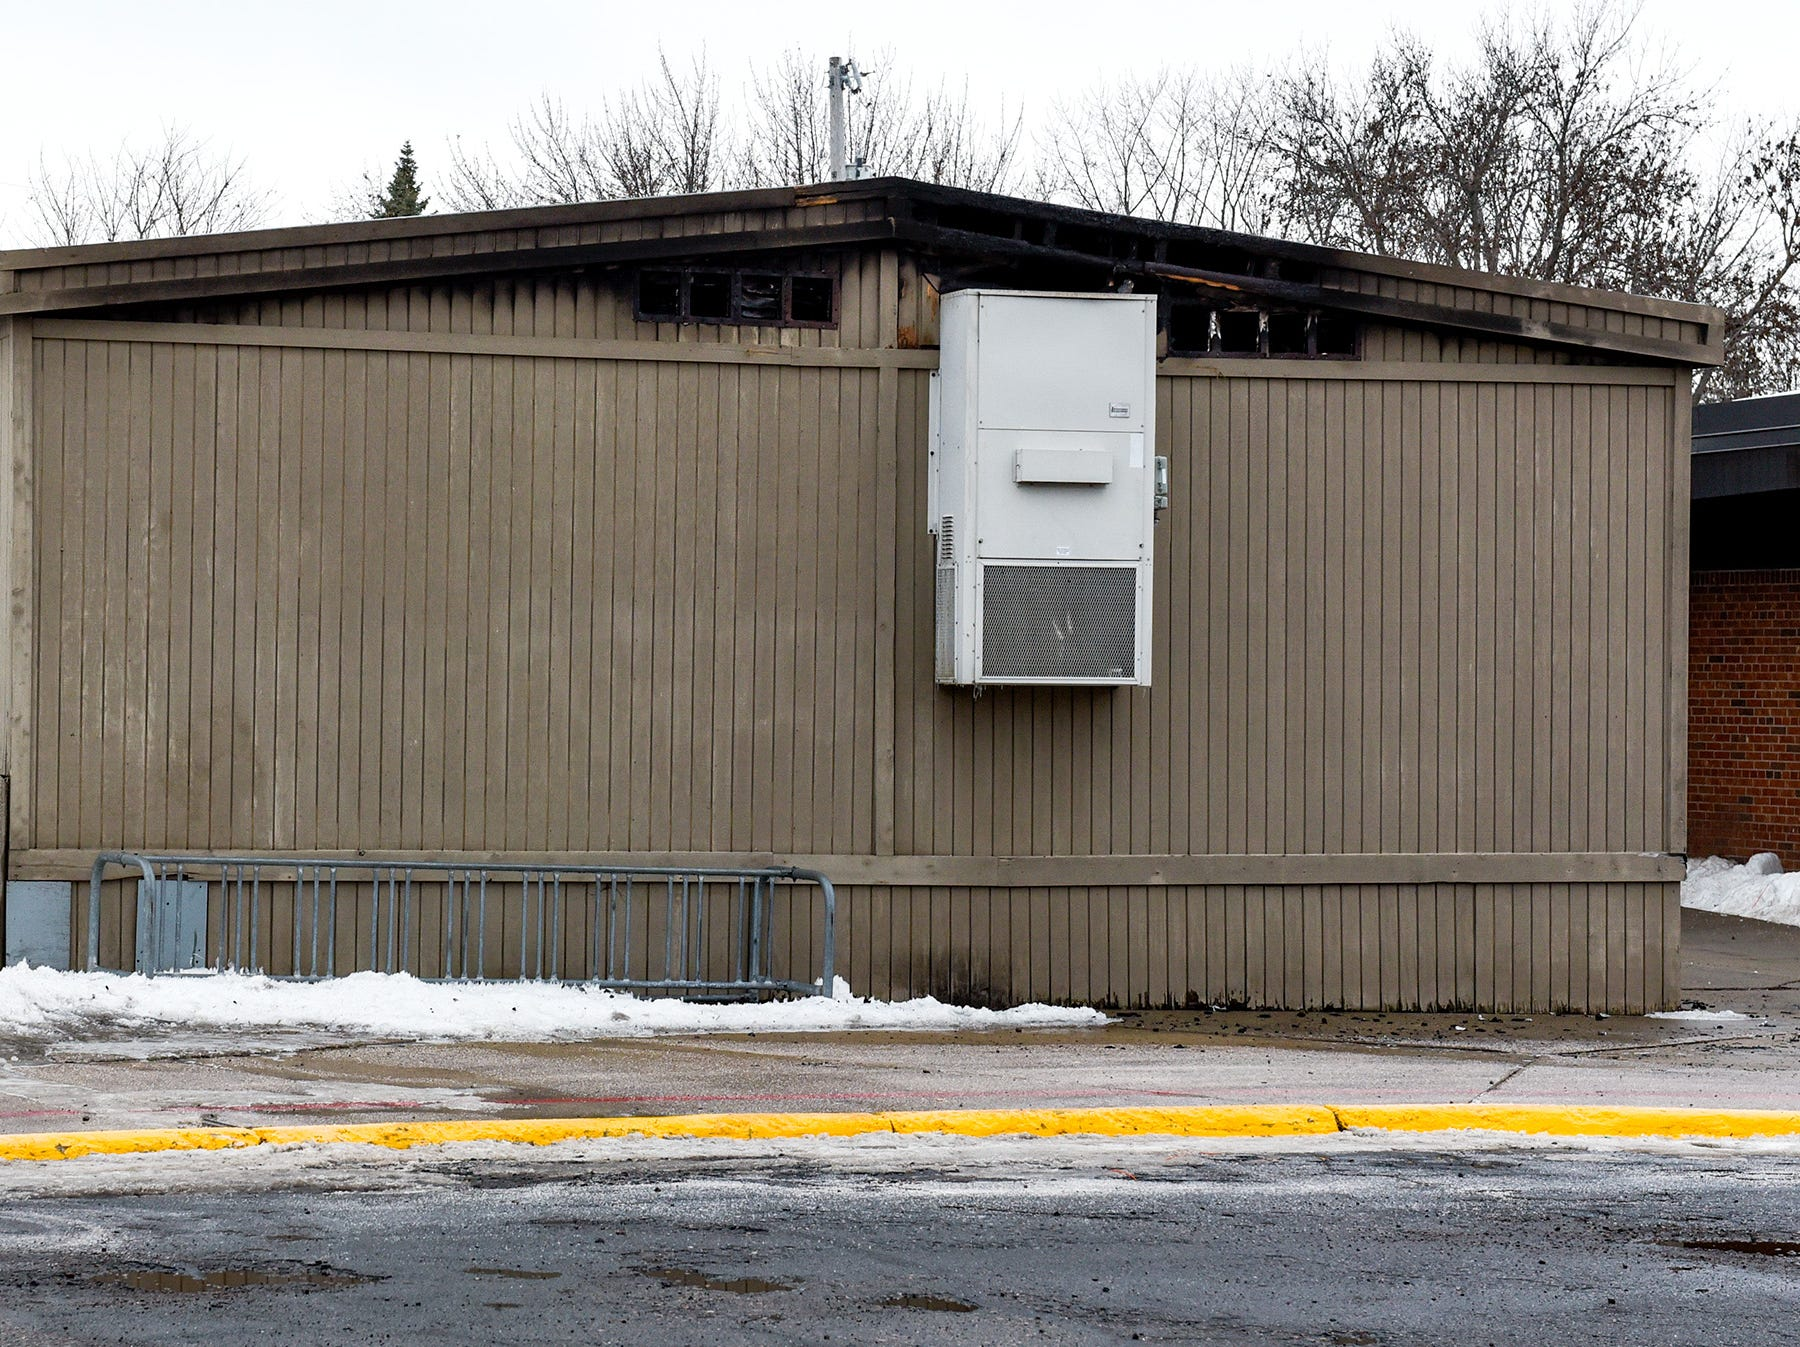 A damaged section of classrooms at Pleasantview Elementary School in Sauk shown Monday, Jan. 14, after a fire Sunday night.